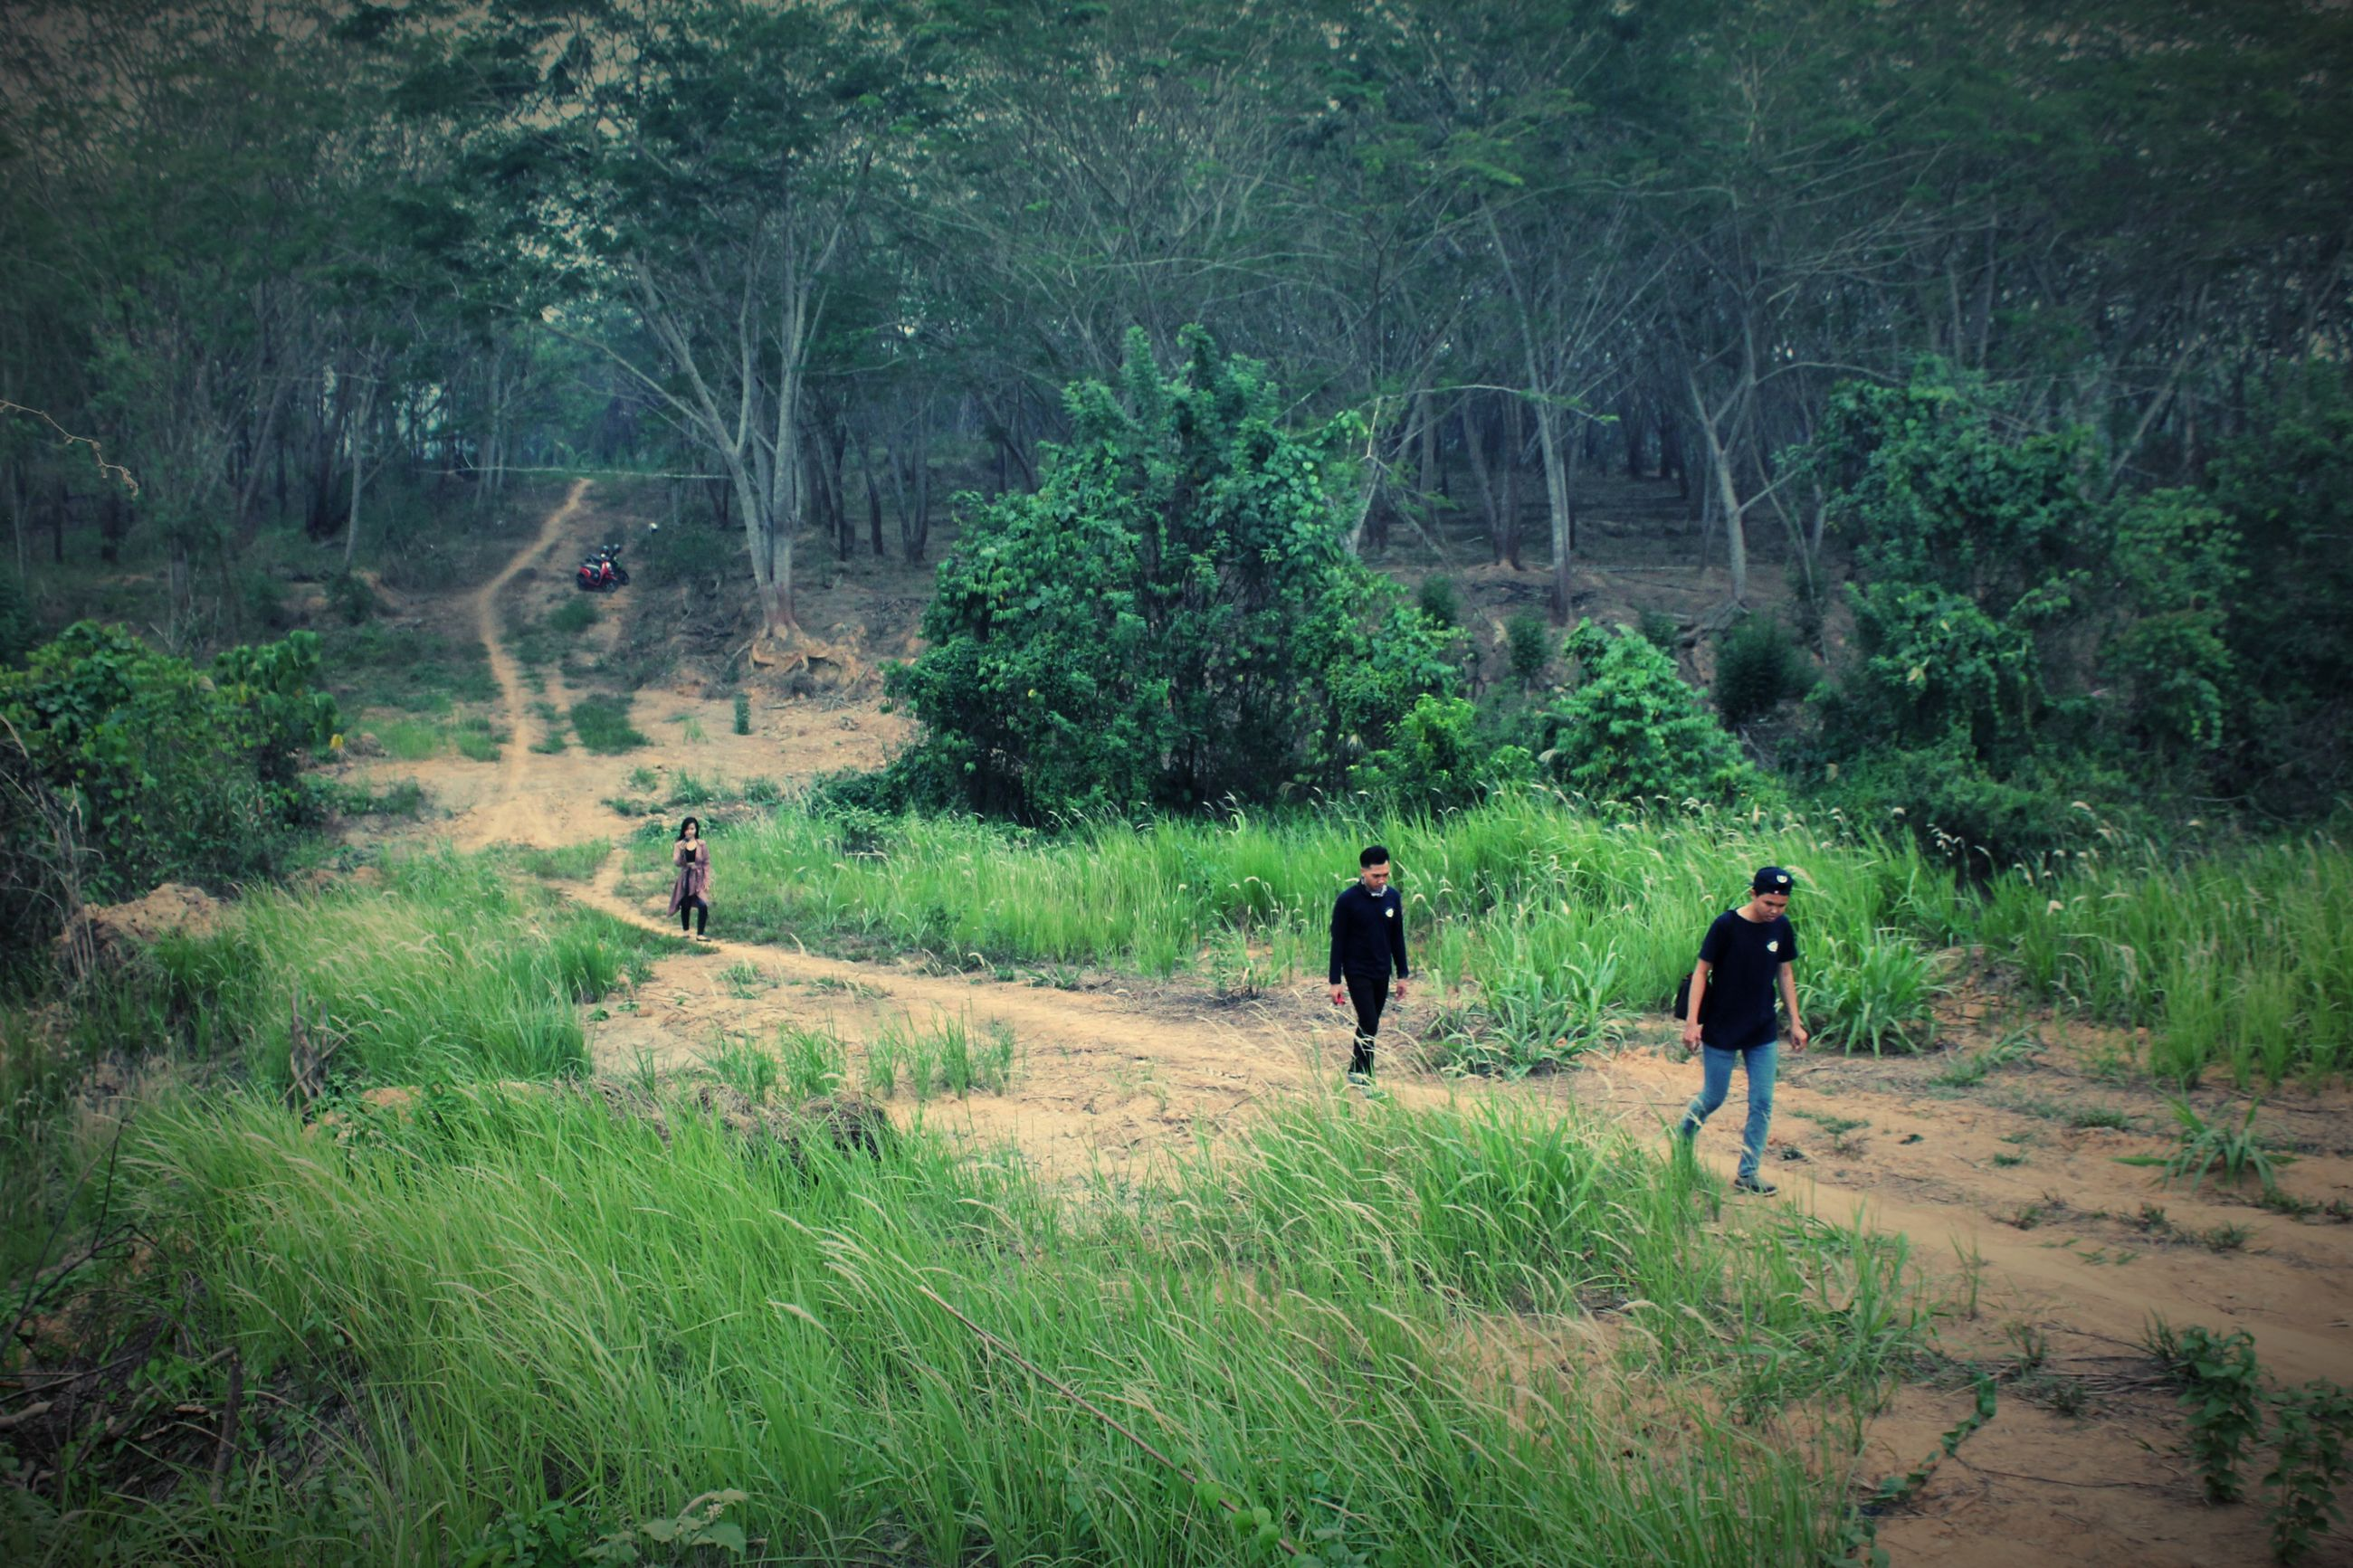 tree, forest, full length, walking, leisure activity, lifestyles, tranquil scene, dirt road, tranquility, nature, vacations, woodland, beauty in nature, green color, scenics, footpath, non-urban scene, casual clothing, outdoors, growth, person